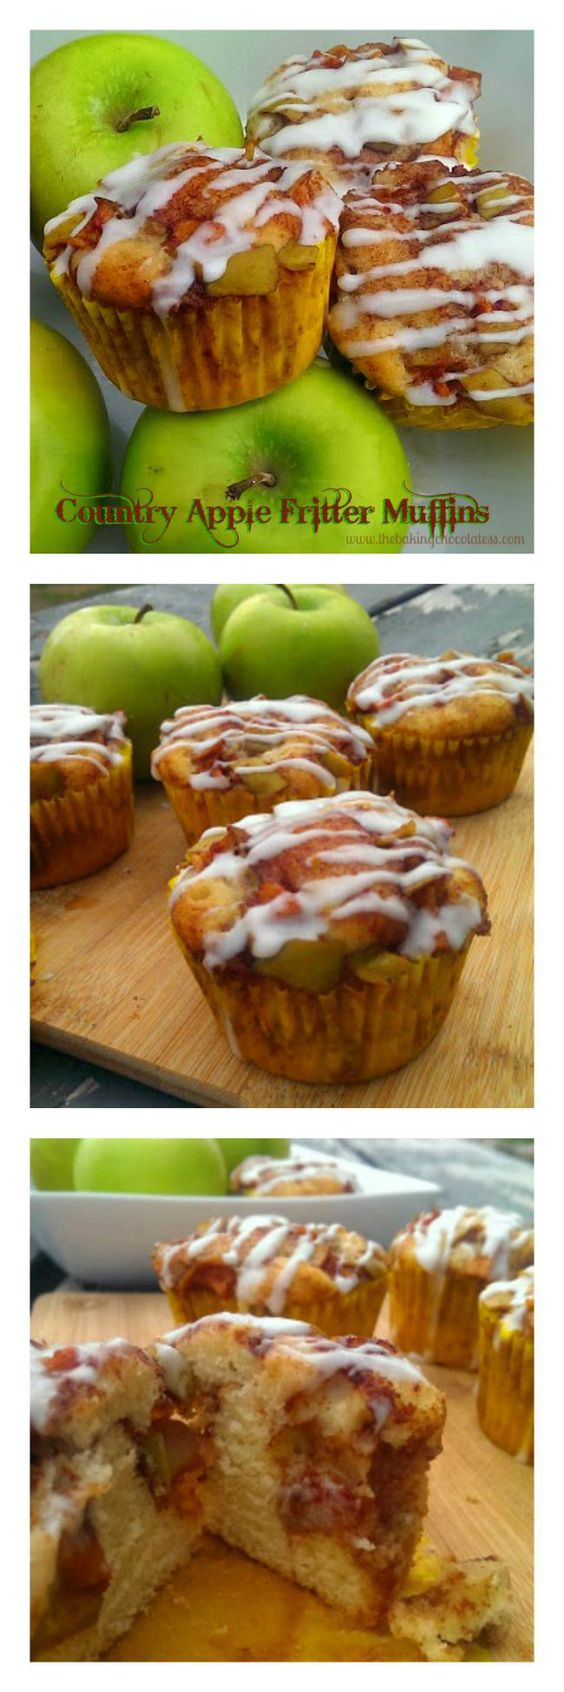 ... Apple Fritter Muffins | The o'jays, Baking chocolate and Muffins